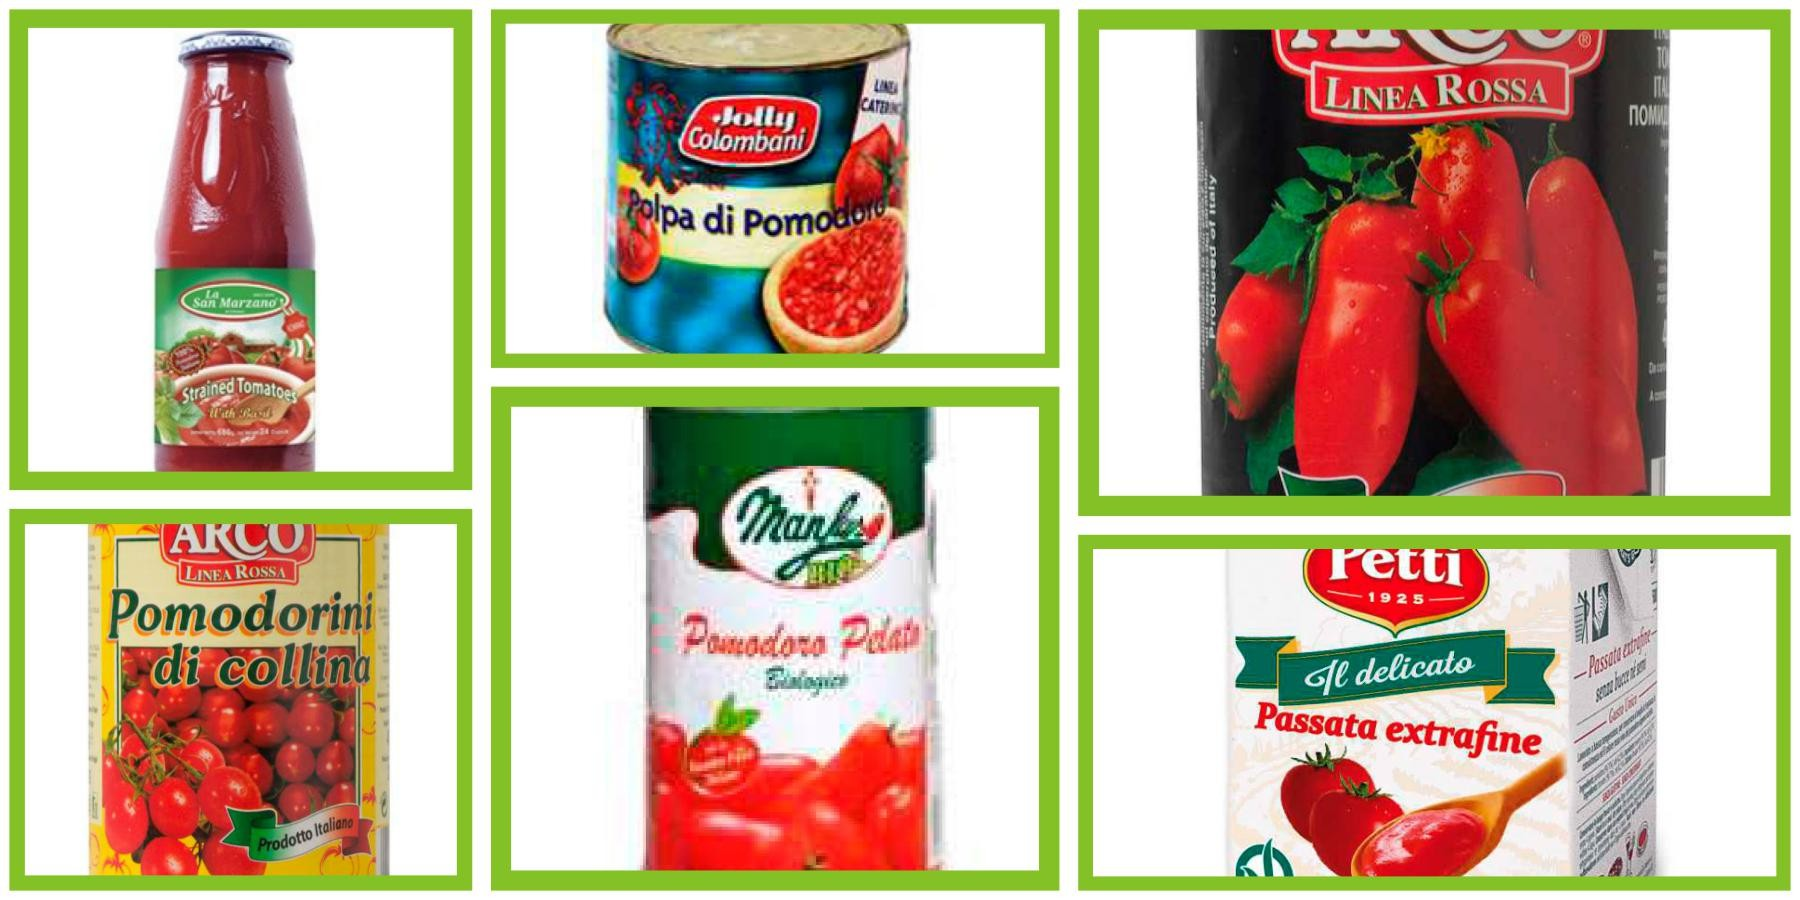 Tomatoes and Tomato Sauces